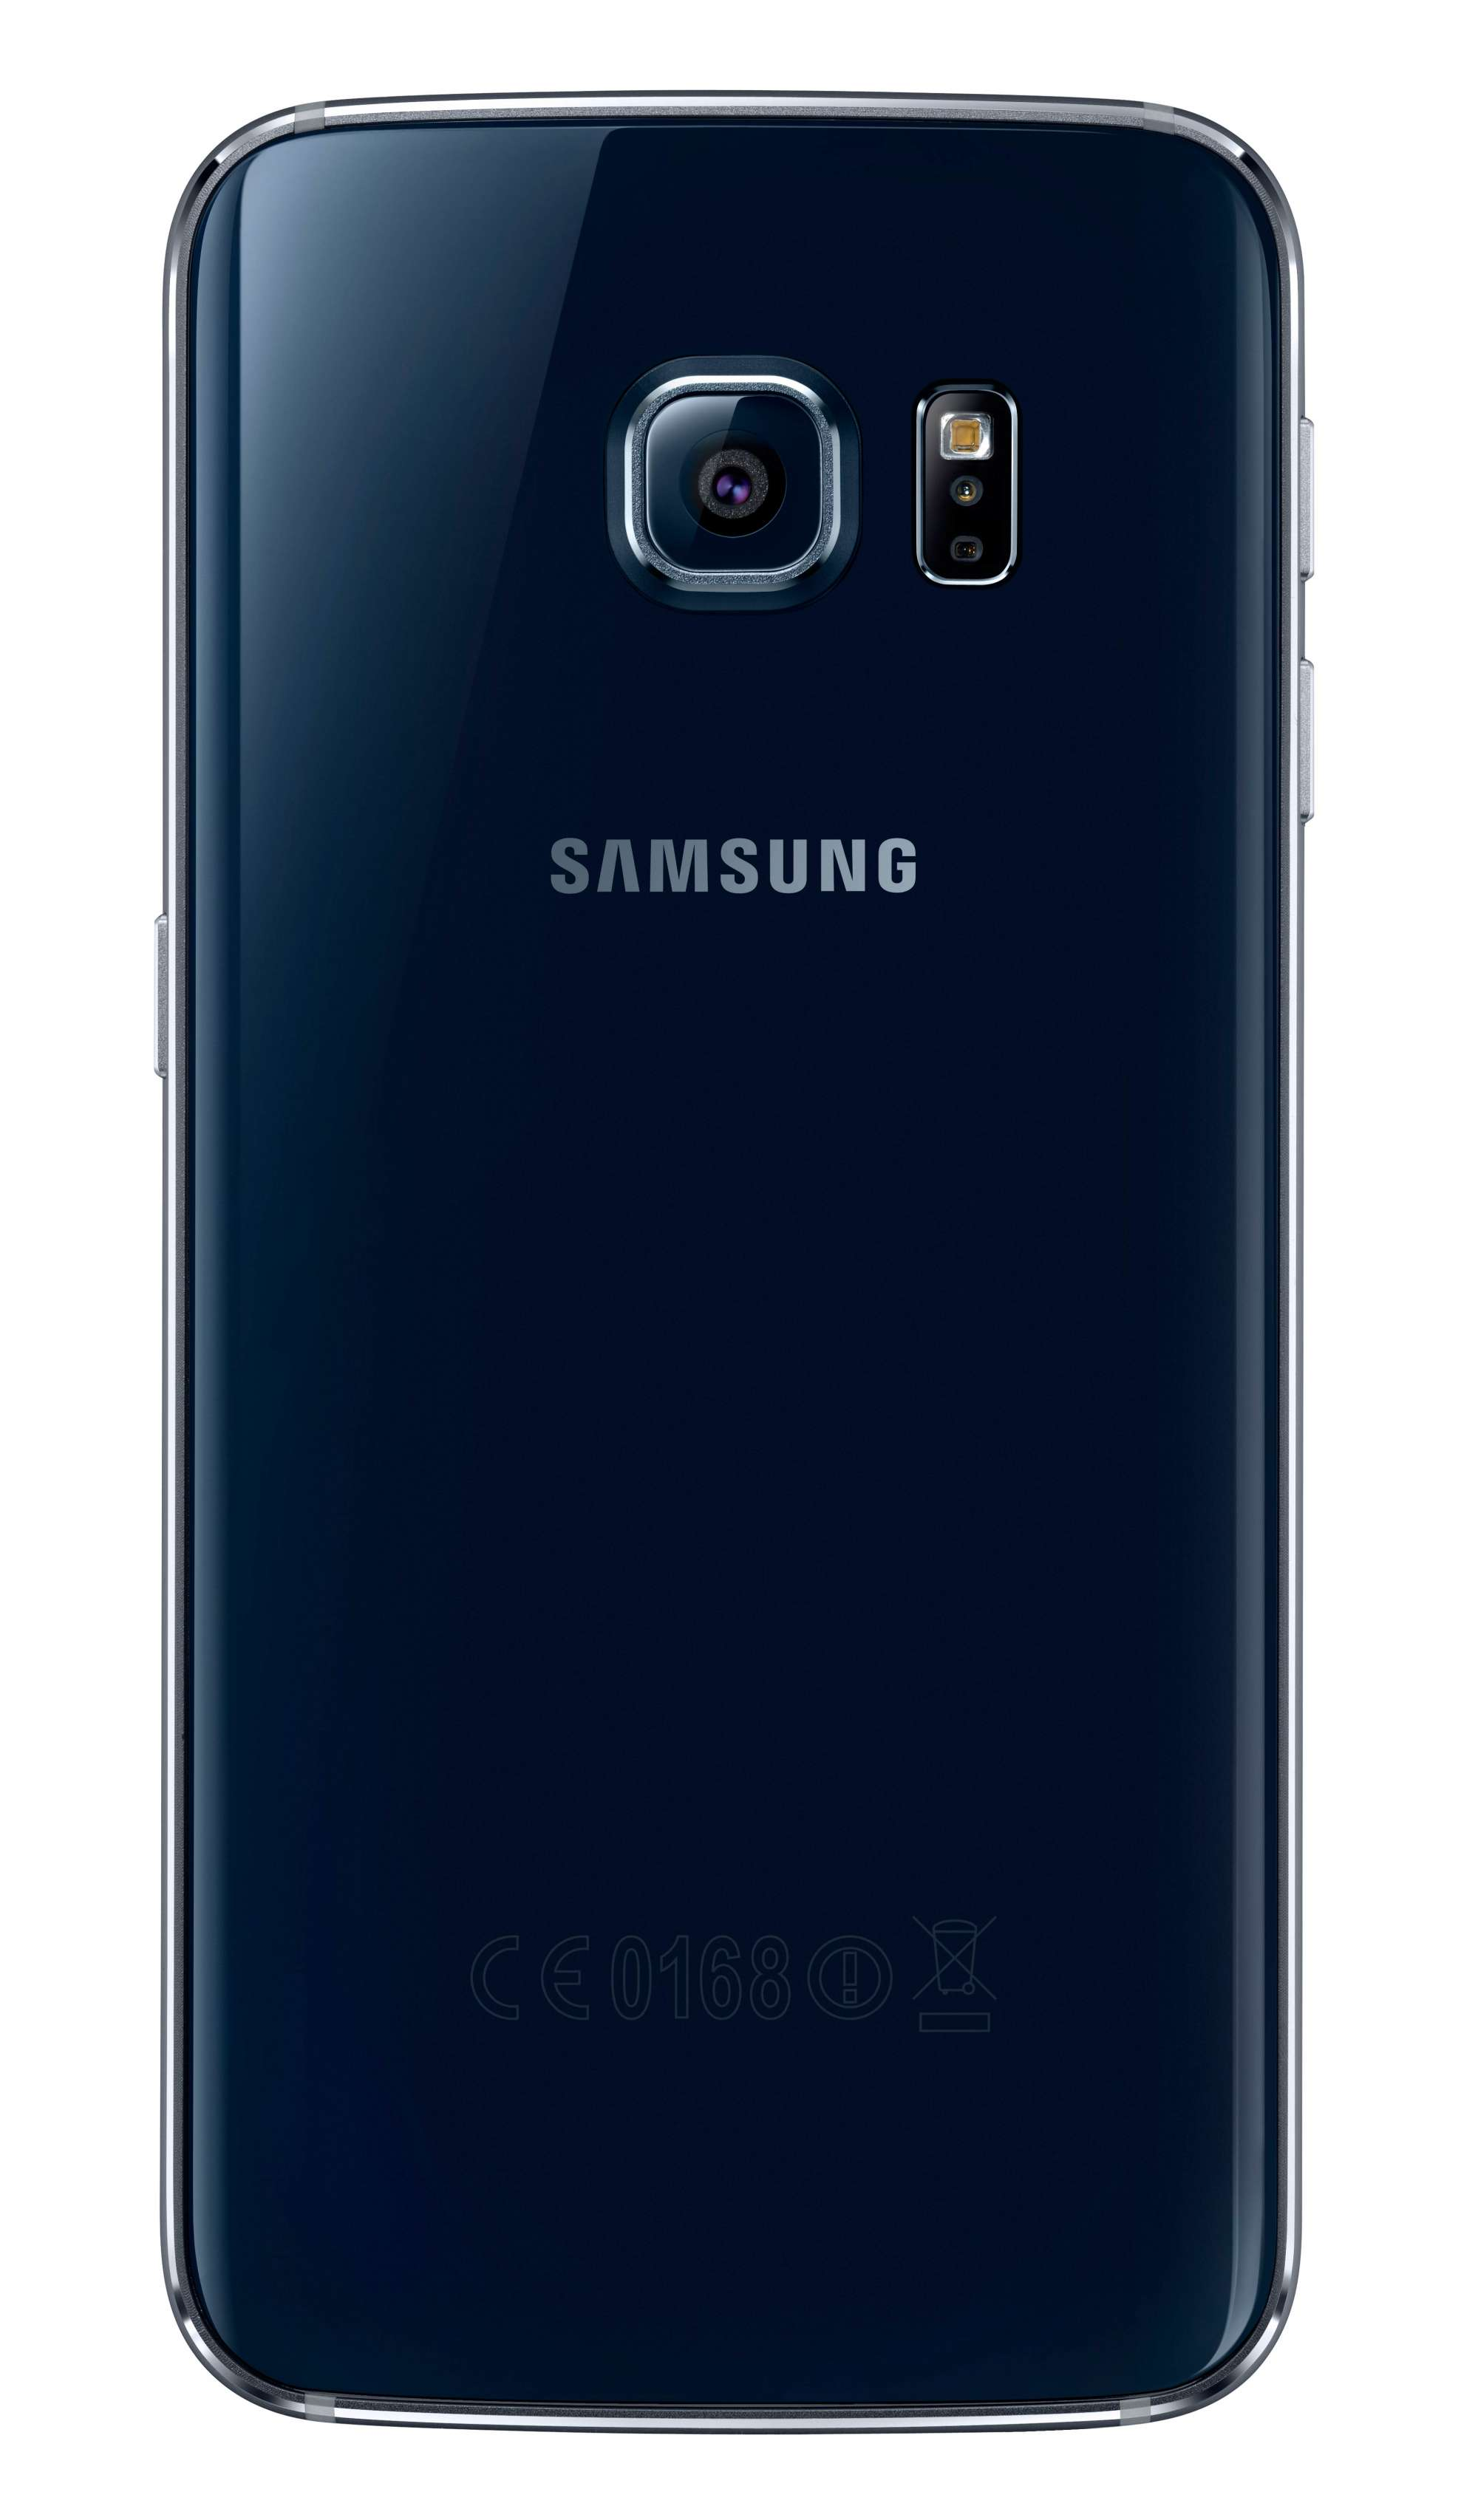 Samsung Galaxy S6 Edge (SM-G925F) Backcover / Batterycover Vervangen